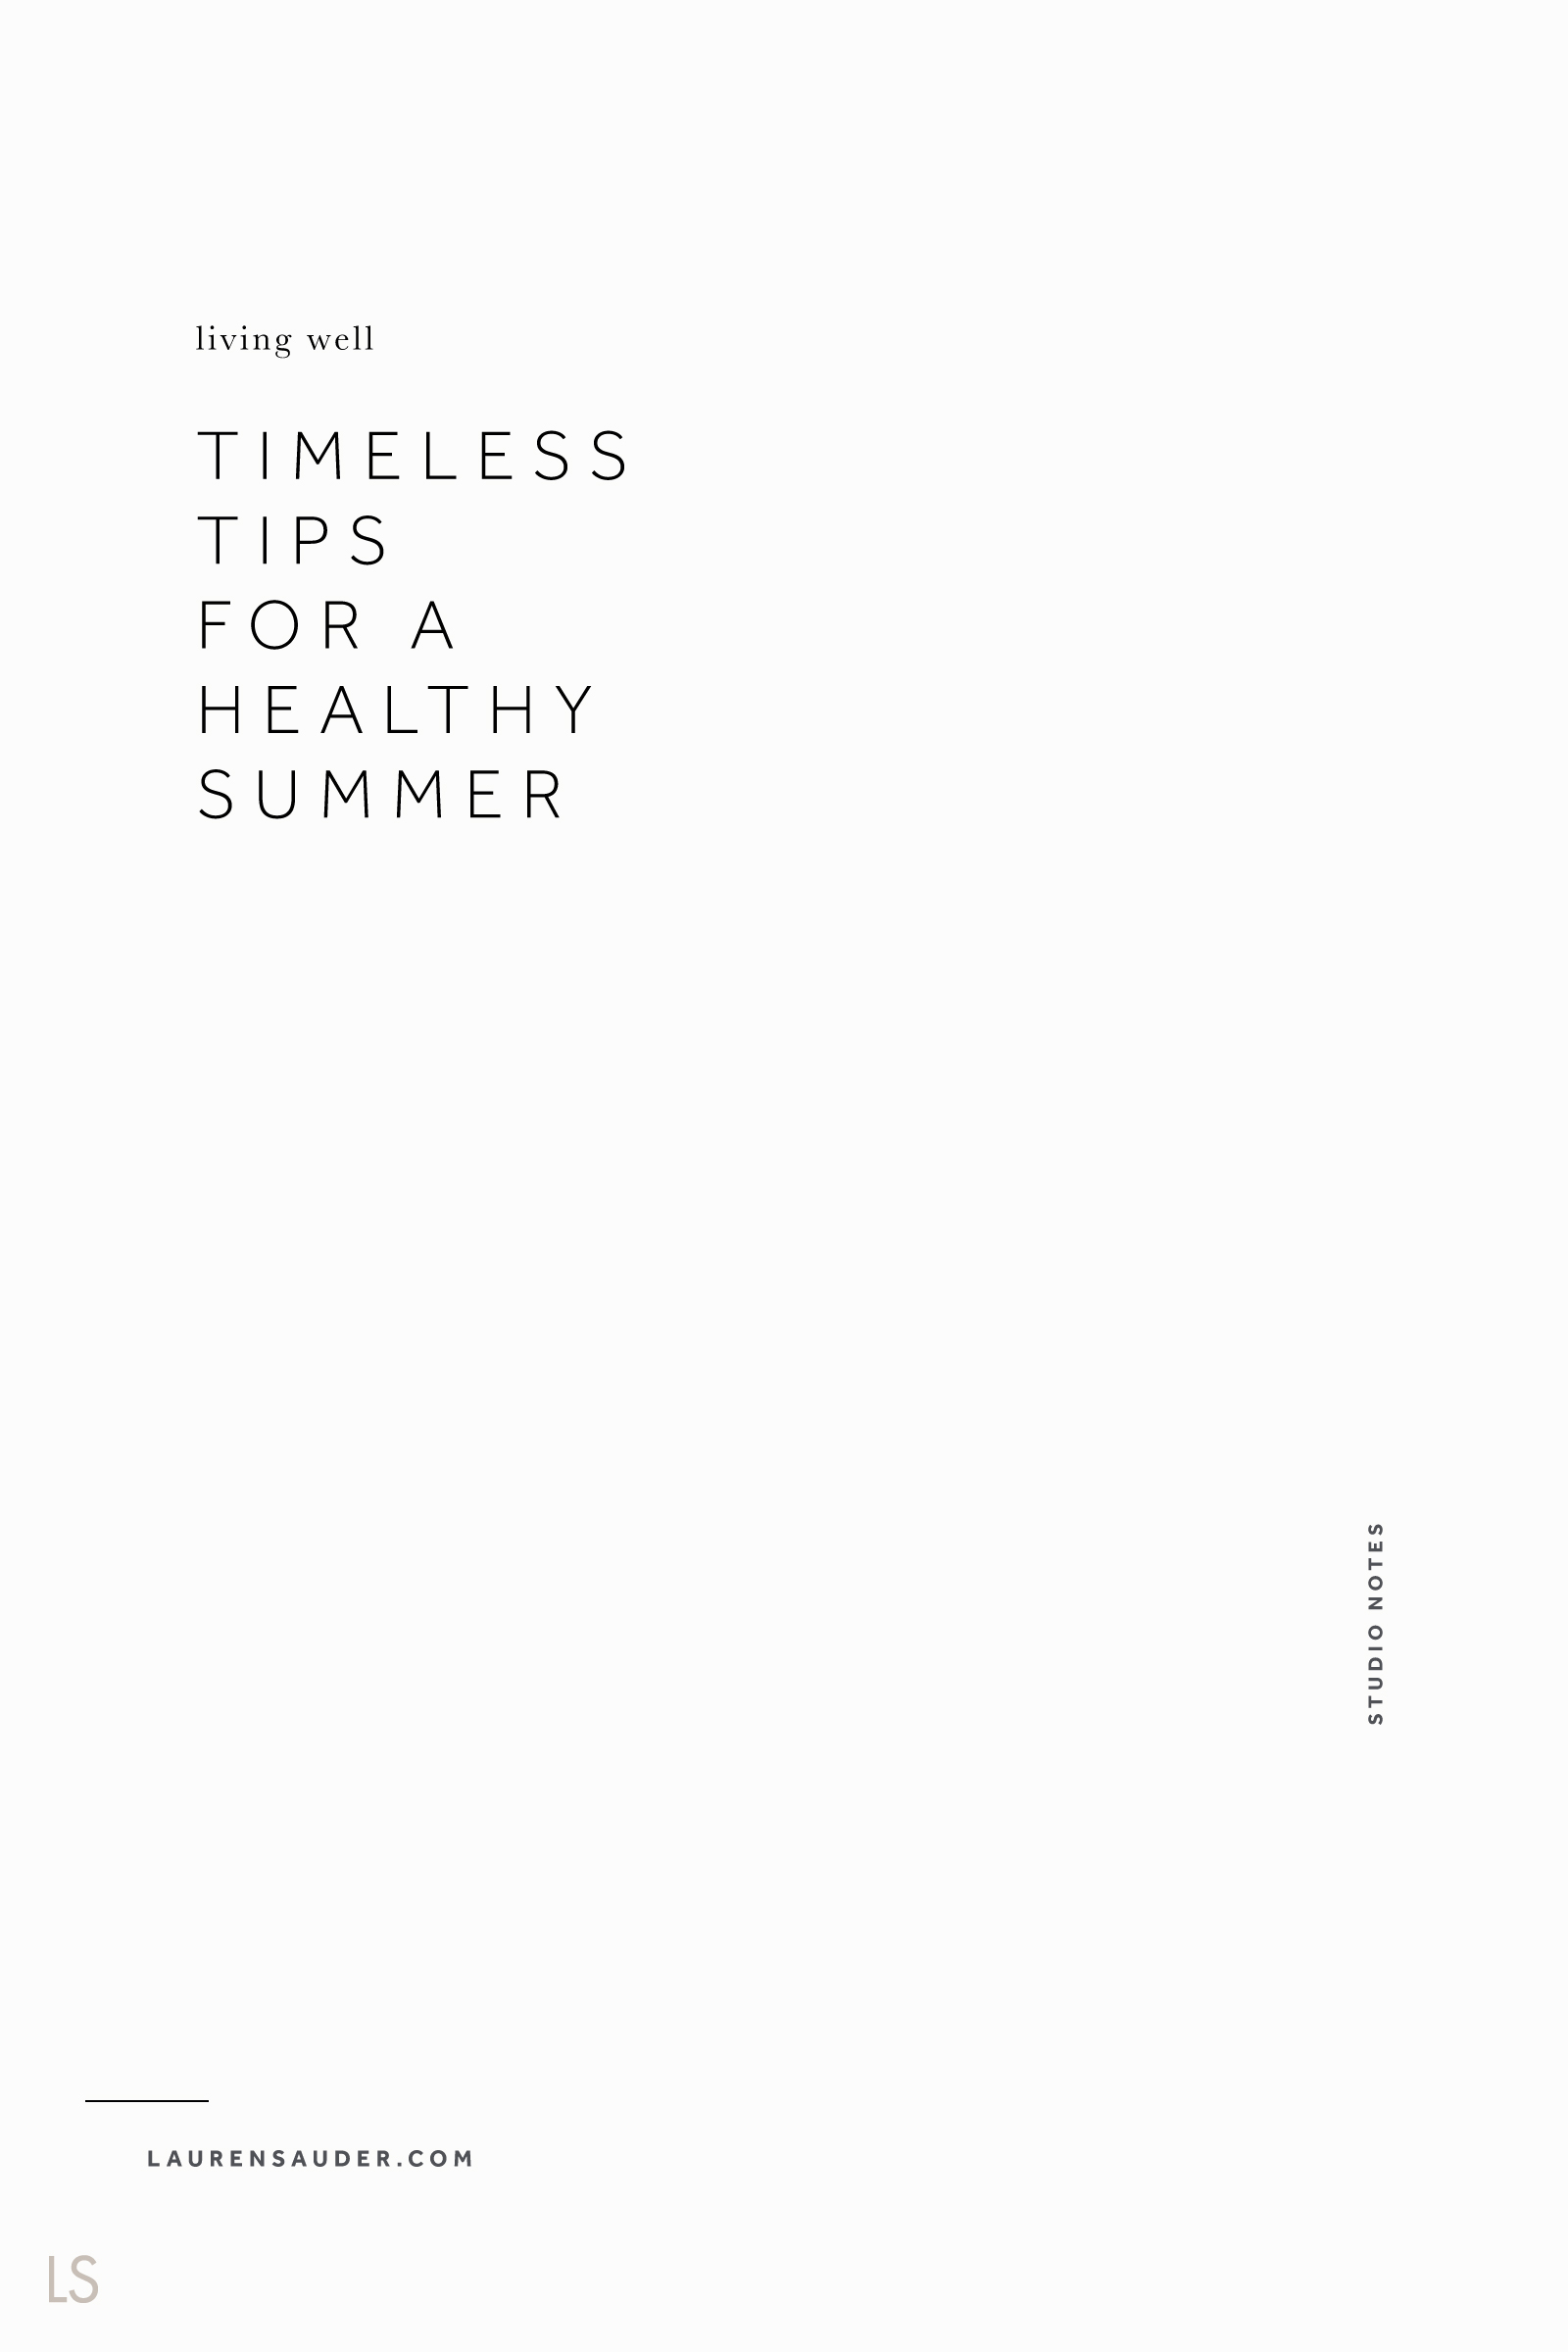 Timeless Tips for a Healthy Summer - Lauren Sauder #health #healthyliving #healthysummer summer healthy tips, how to stay healthy in the summer, summer tips for skin, summer nutrition tips,